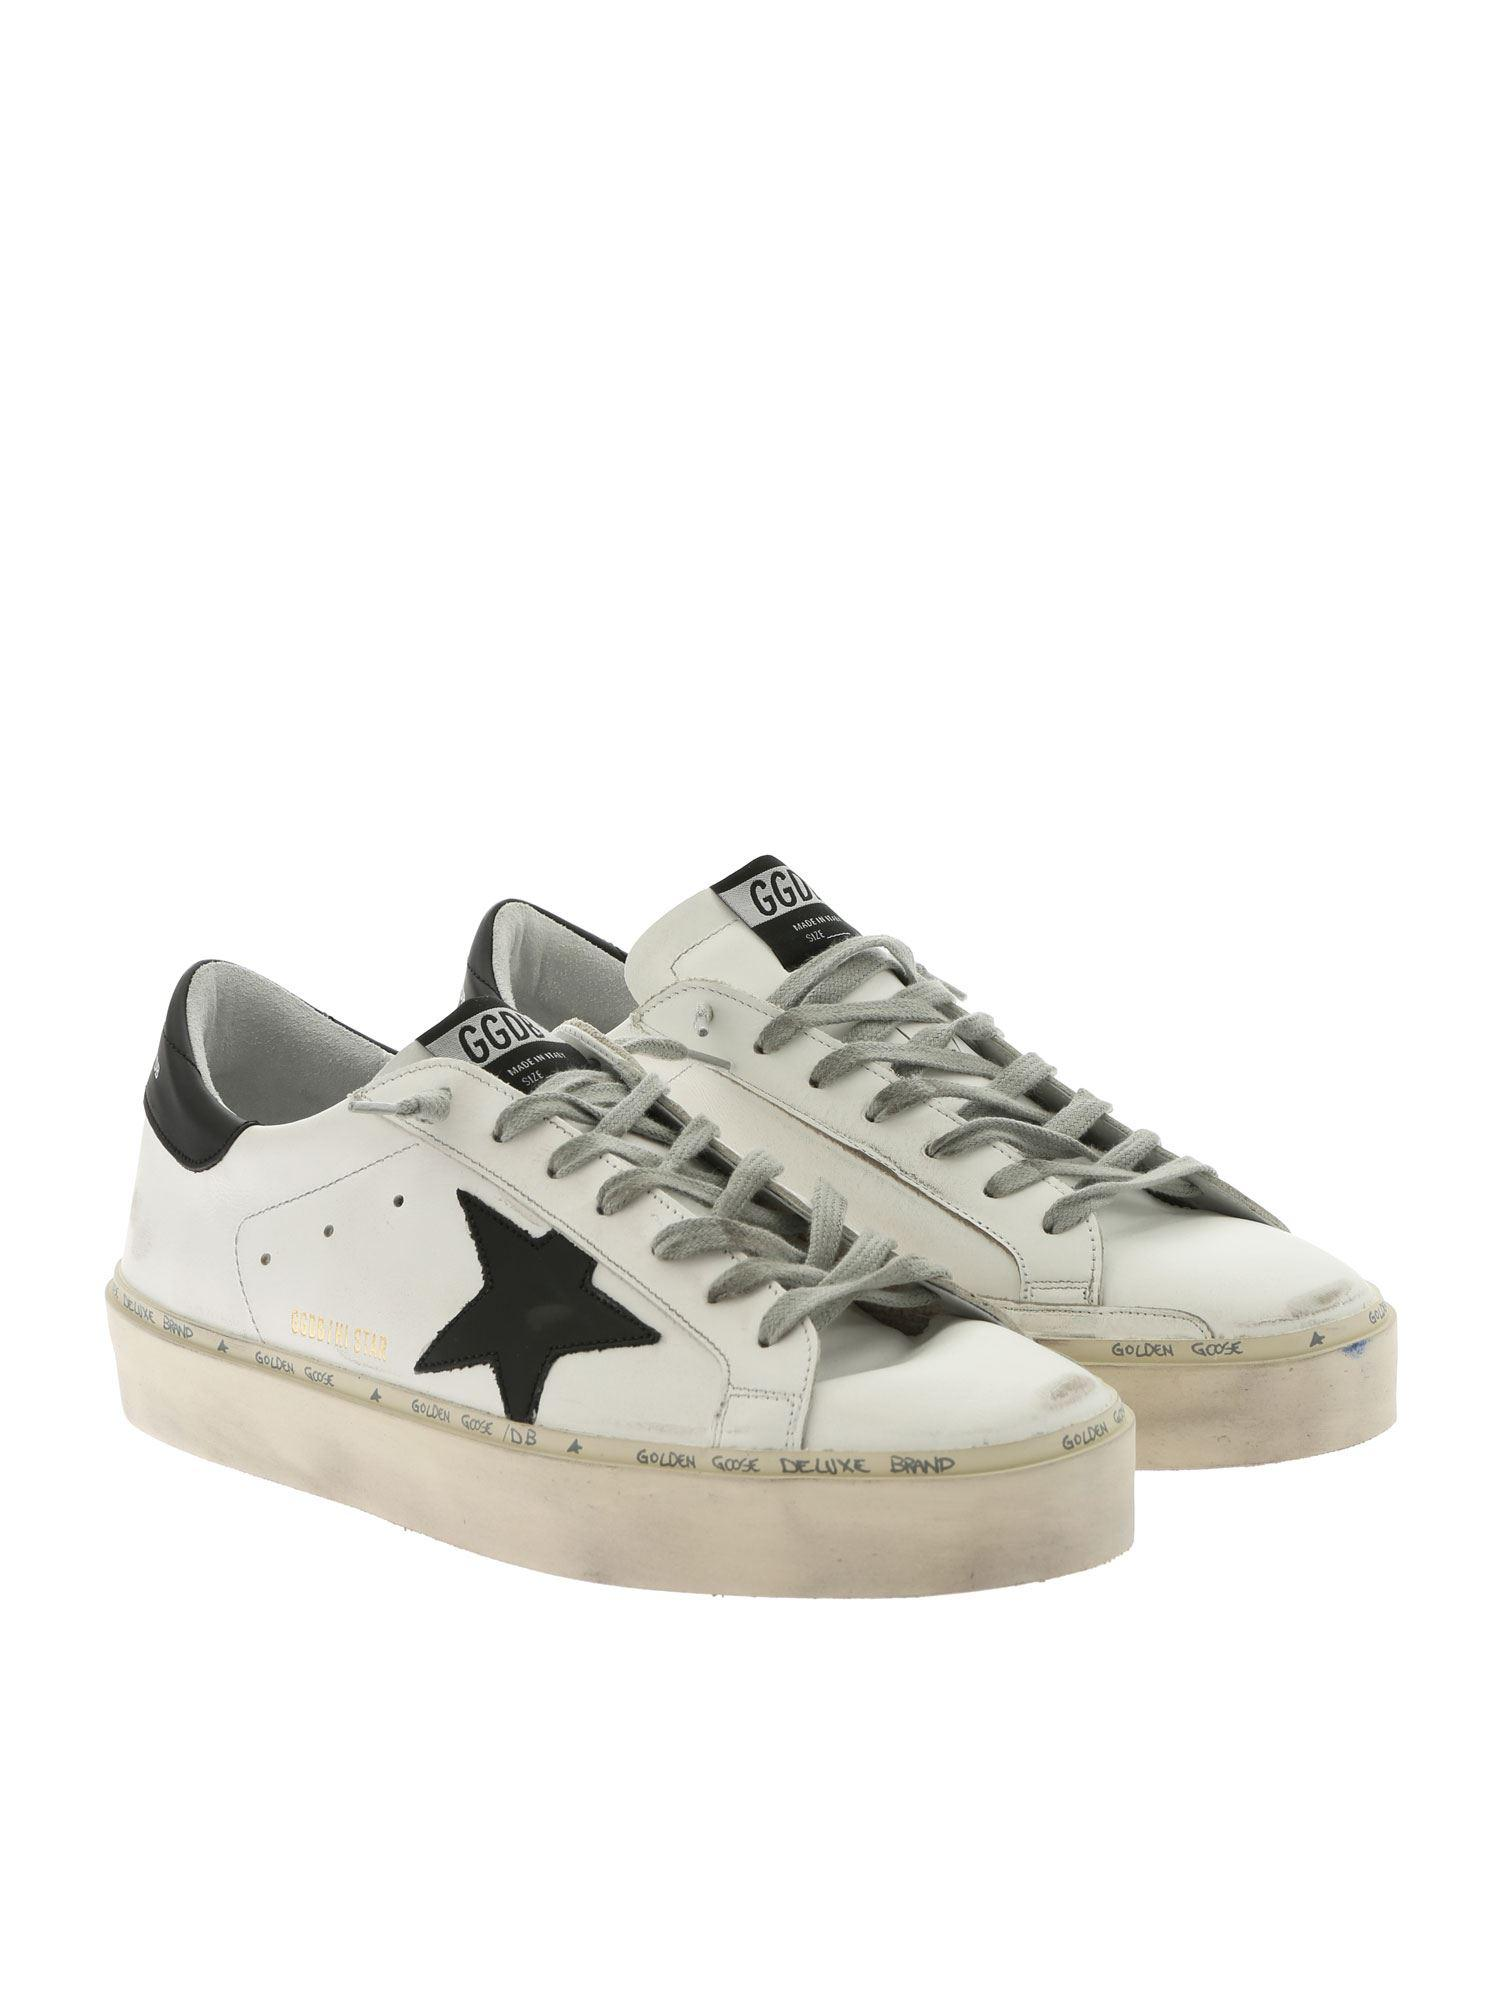 cef7423b04305 Golden Goose Deluxe Brand White Hi Star Sneakers With Black Star in White  for Men - Lyst